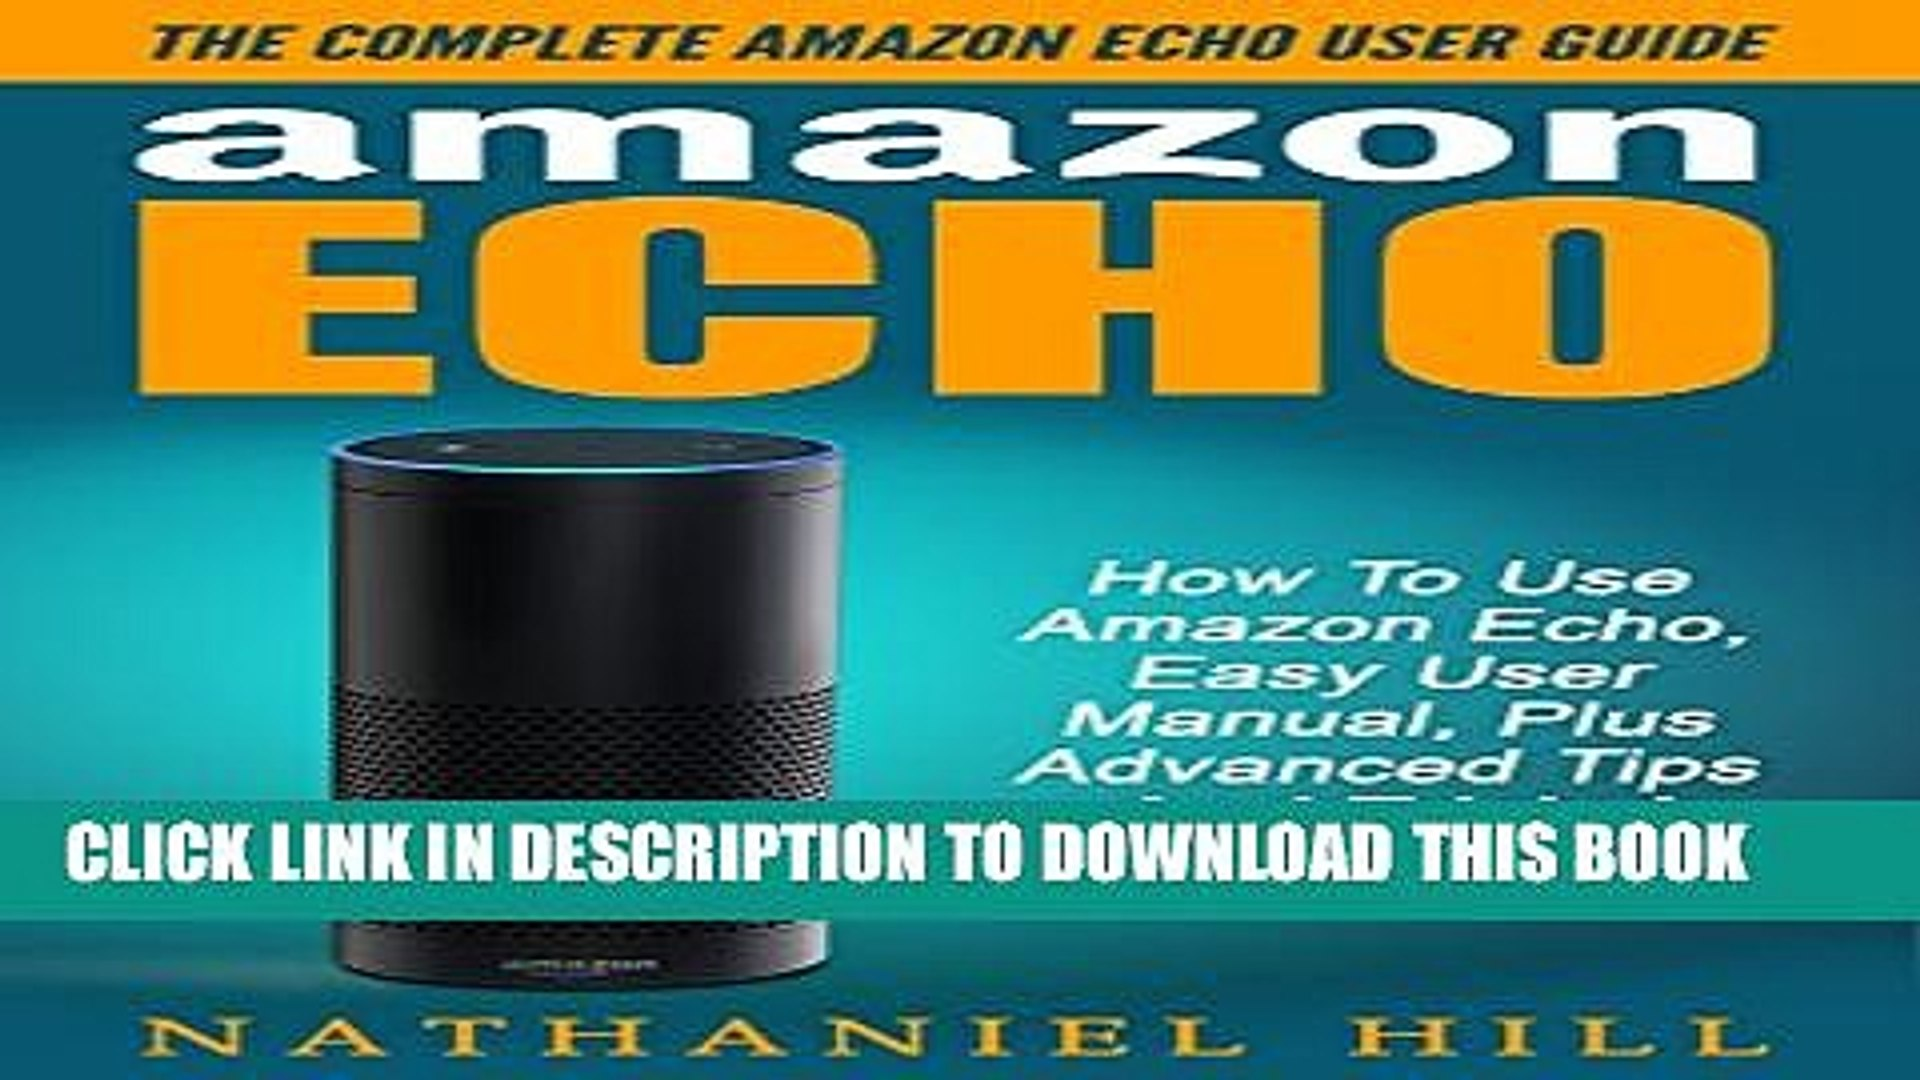 Collection Book Amazon Echo: The Complete Amazon Echo User Guide - How To Use Amazon Echo, Easy